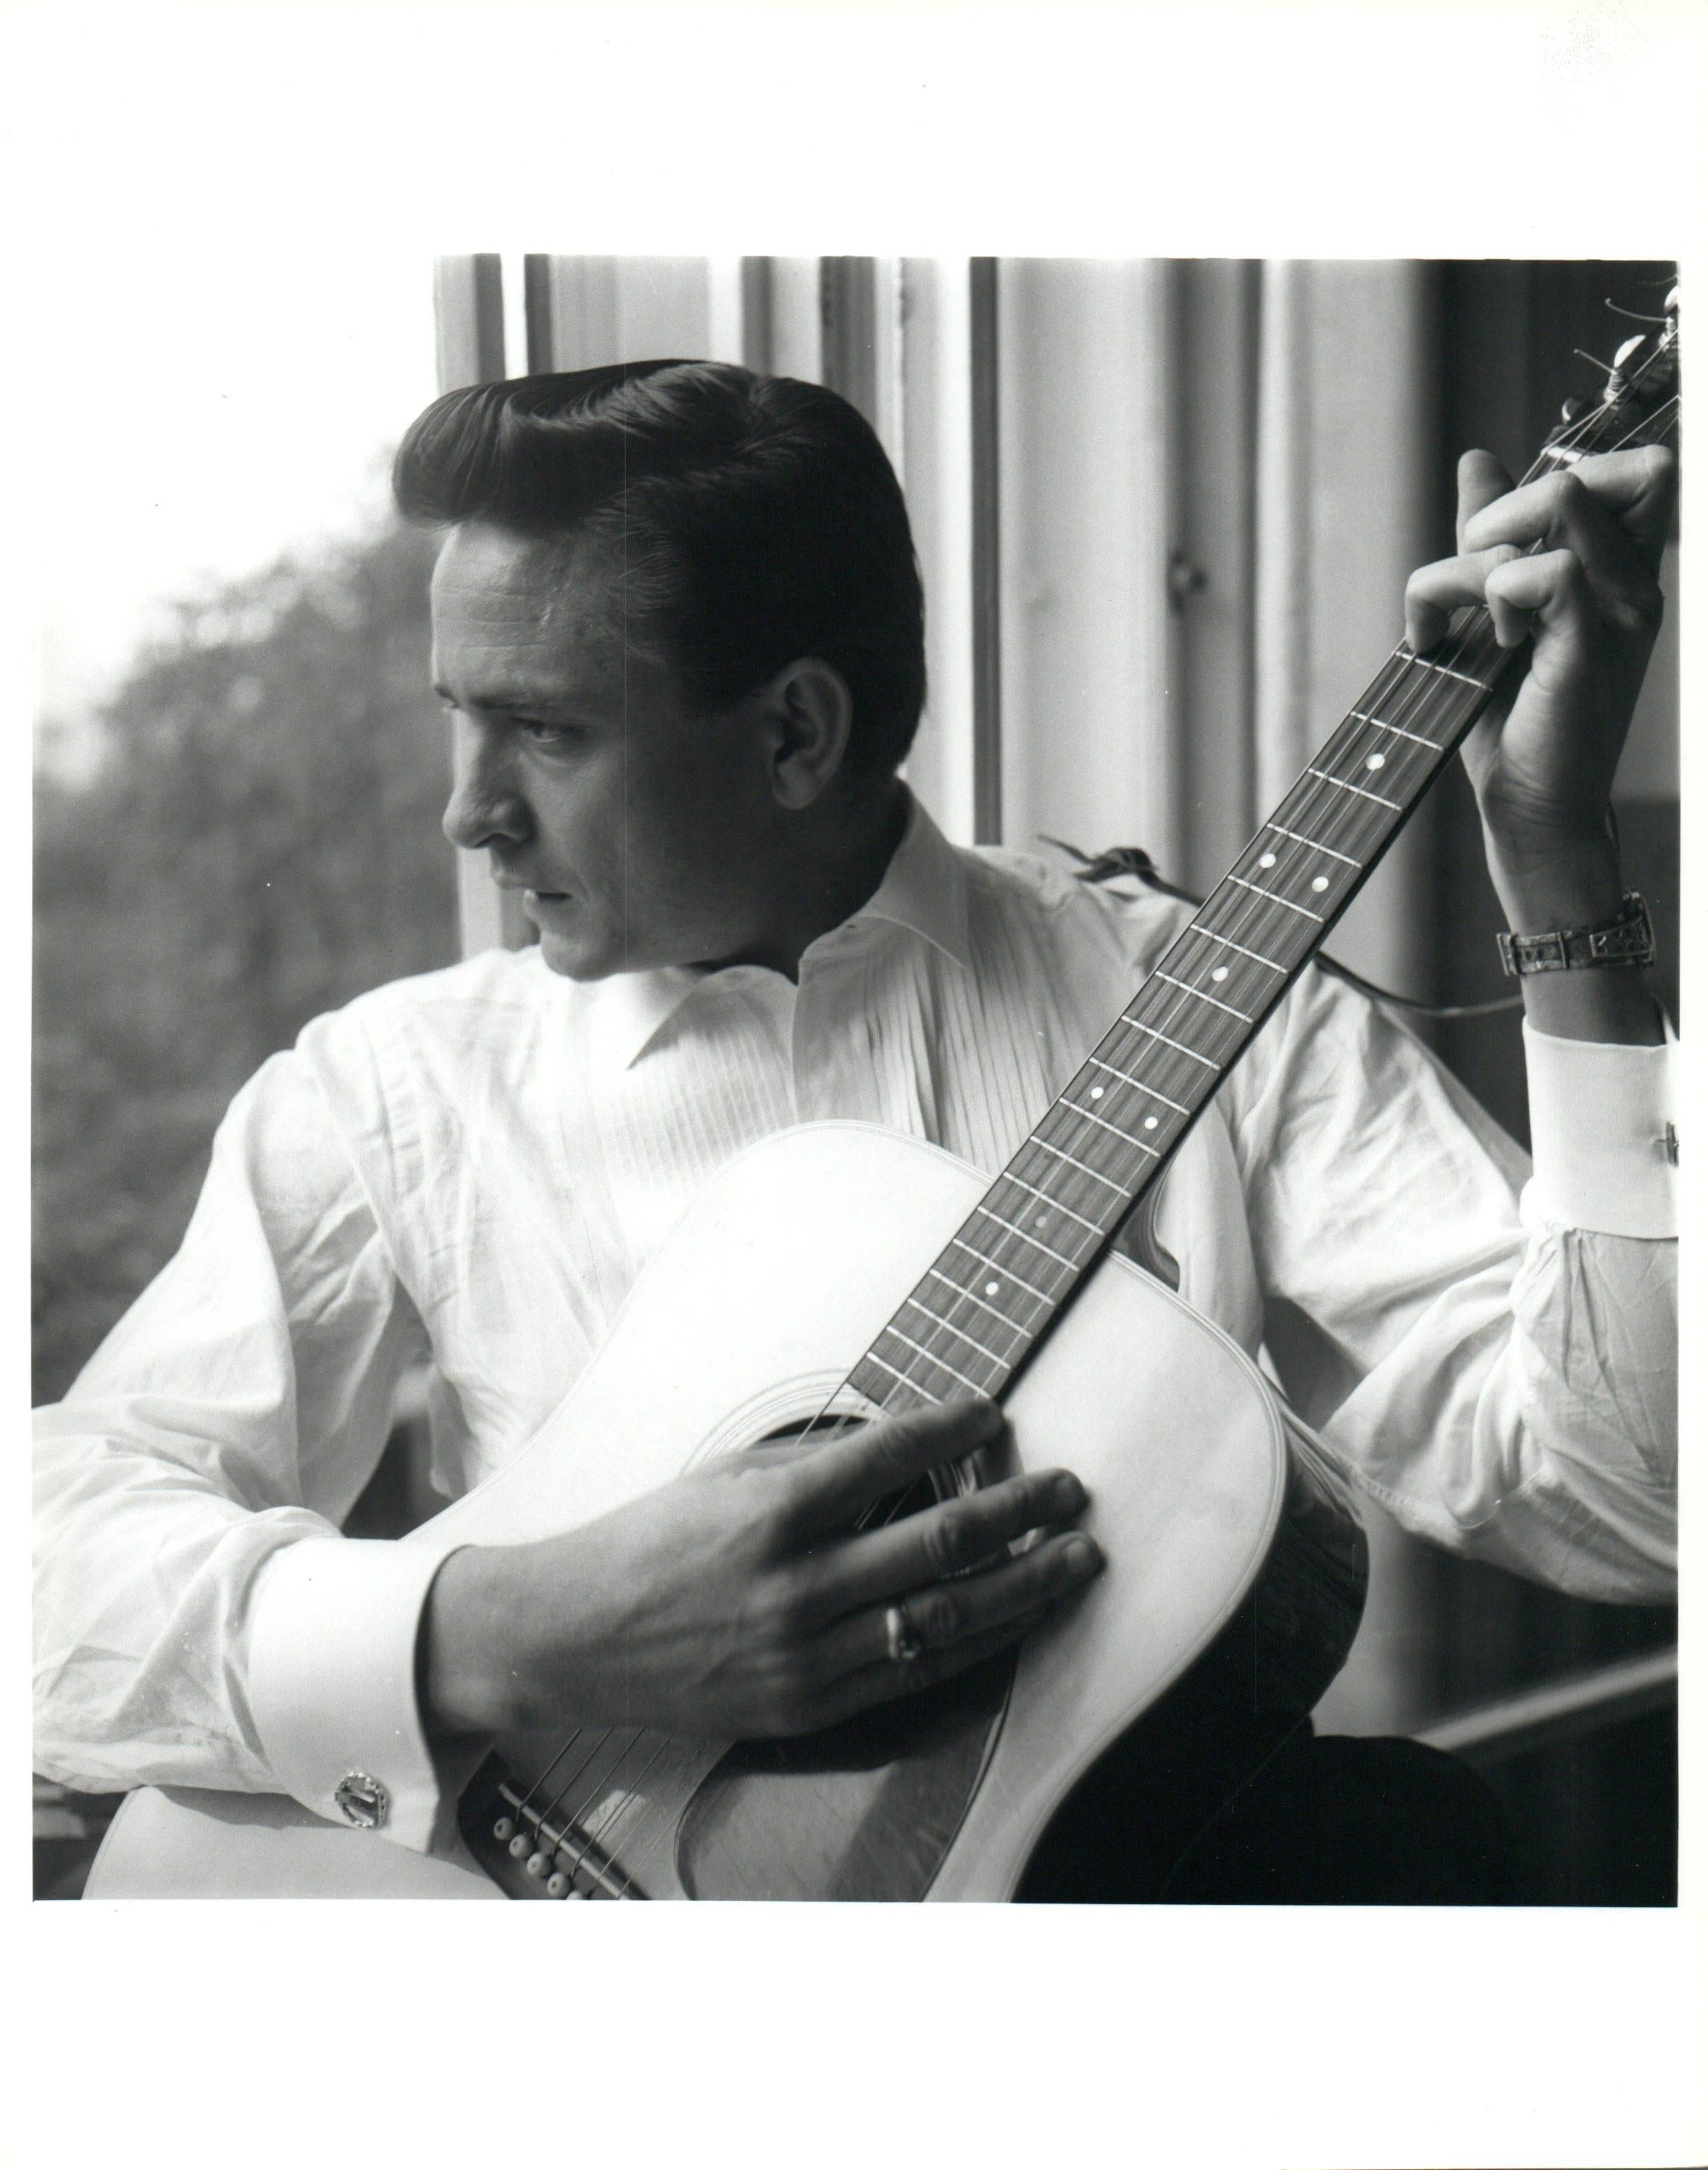 Unknown johnny cash playing guitar in windowlight vintage original photograph